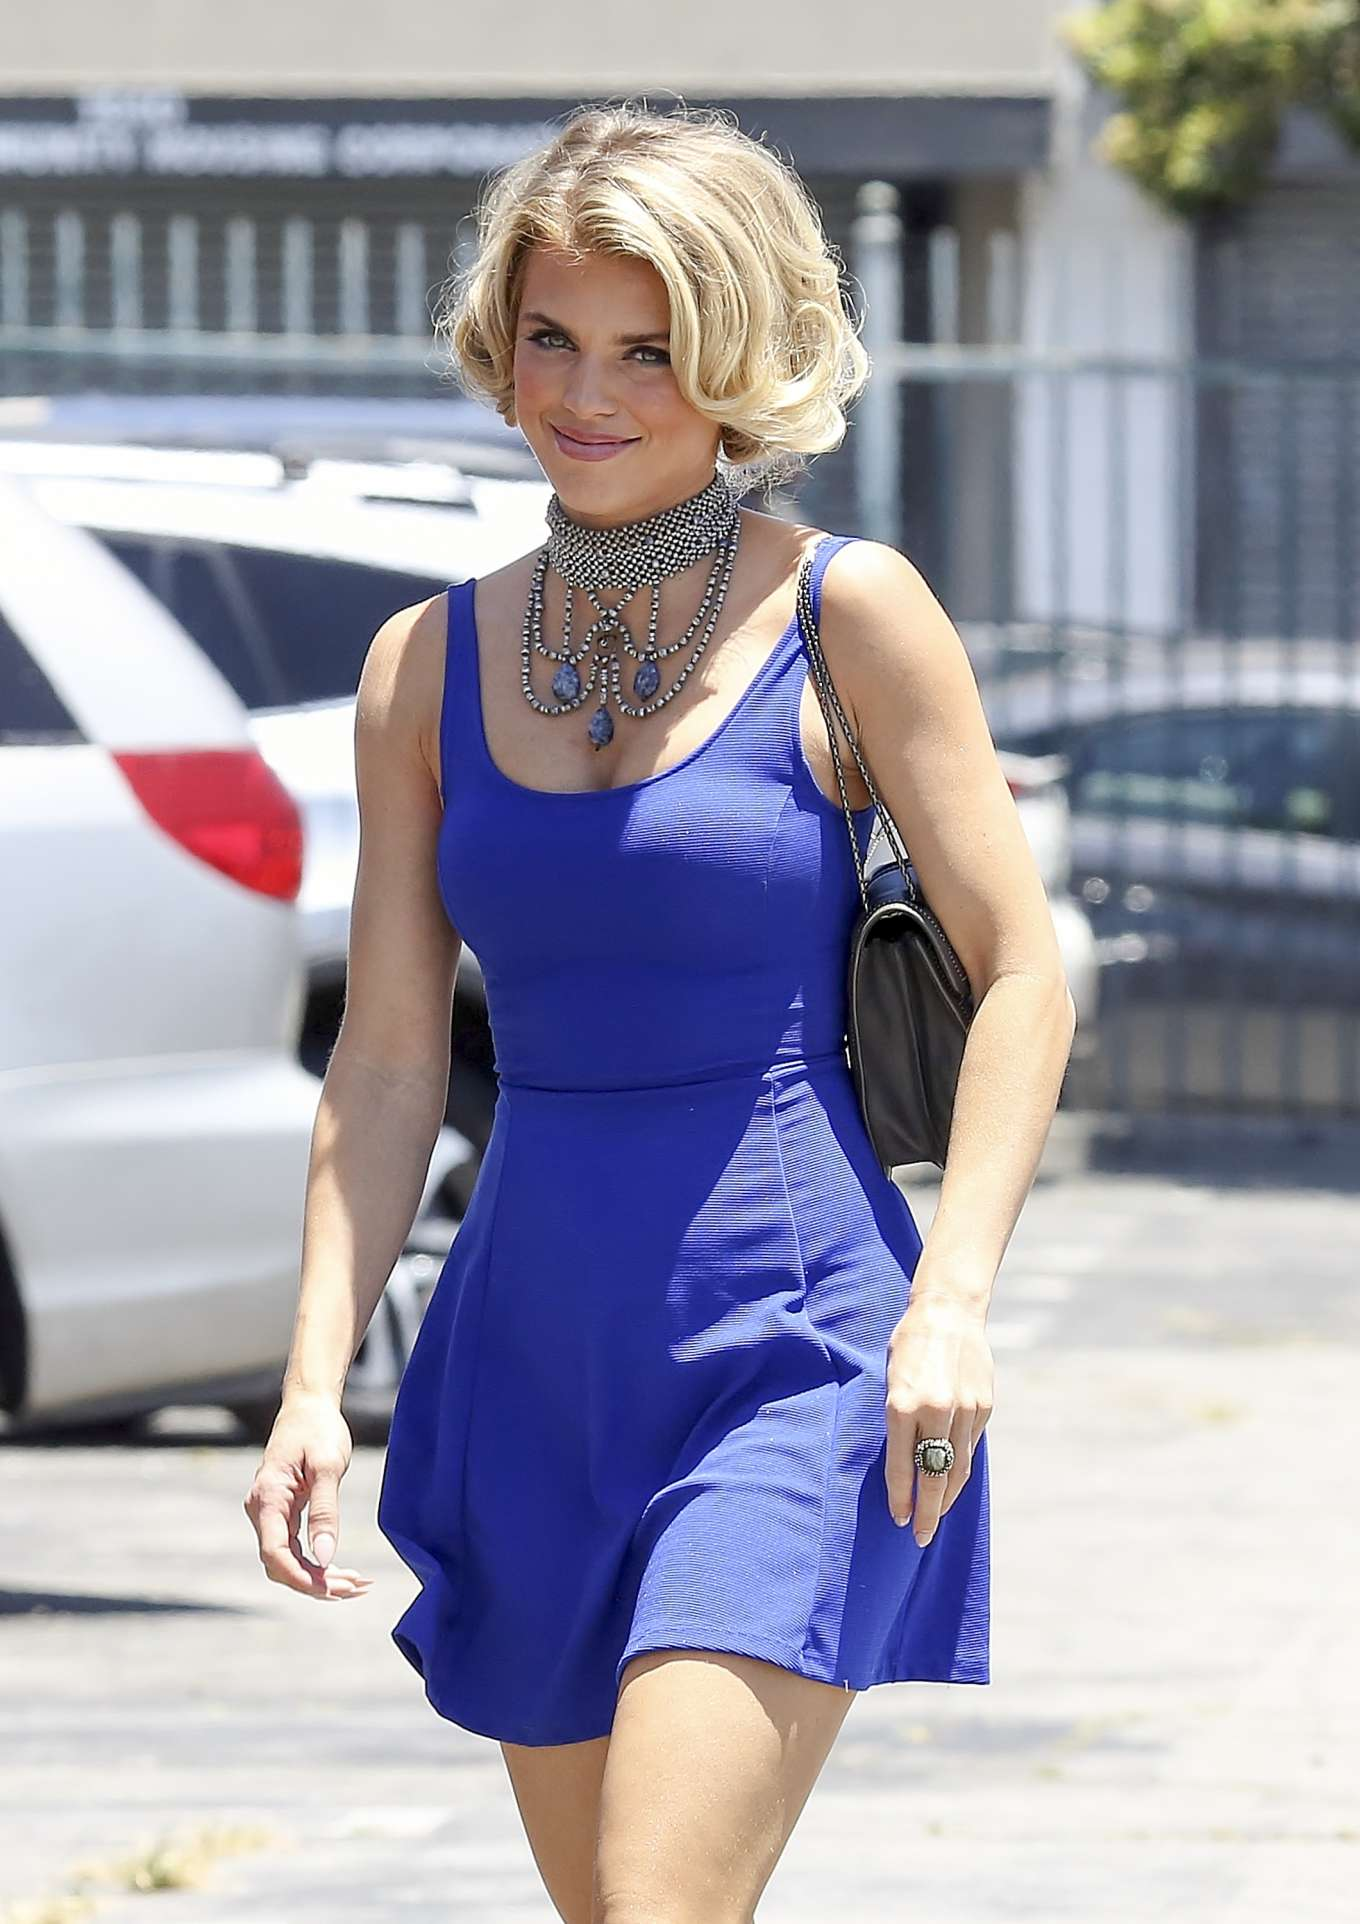 AnnaLynne McCord in Blue Mini Dress - Ariving to perform in the play 'Interlude' in Los Angeles